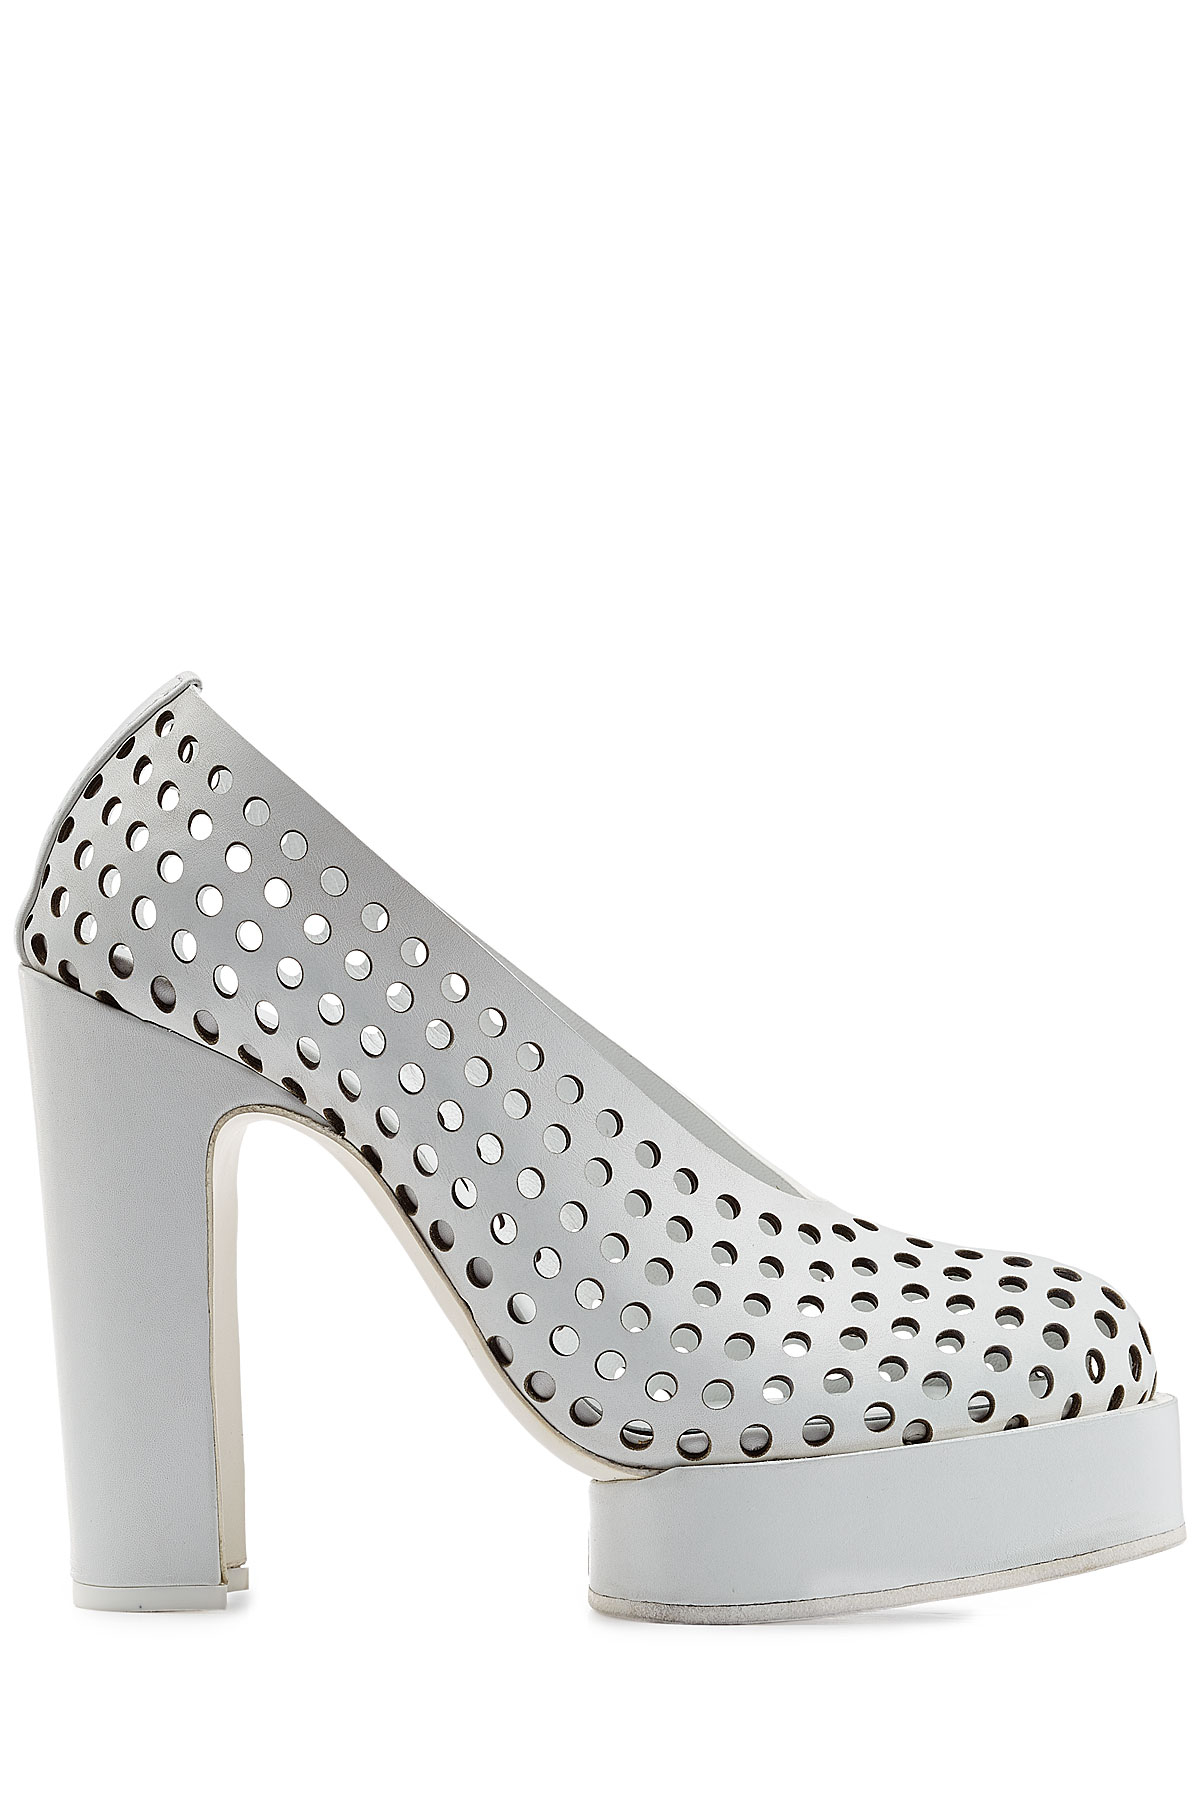 68ec102bca8 Lyst - Jil Sander Perforated Leather Platform Pumps - White in White